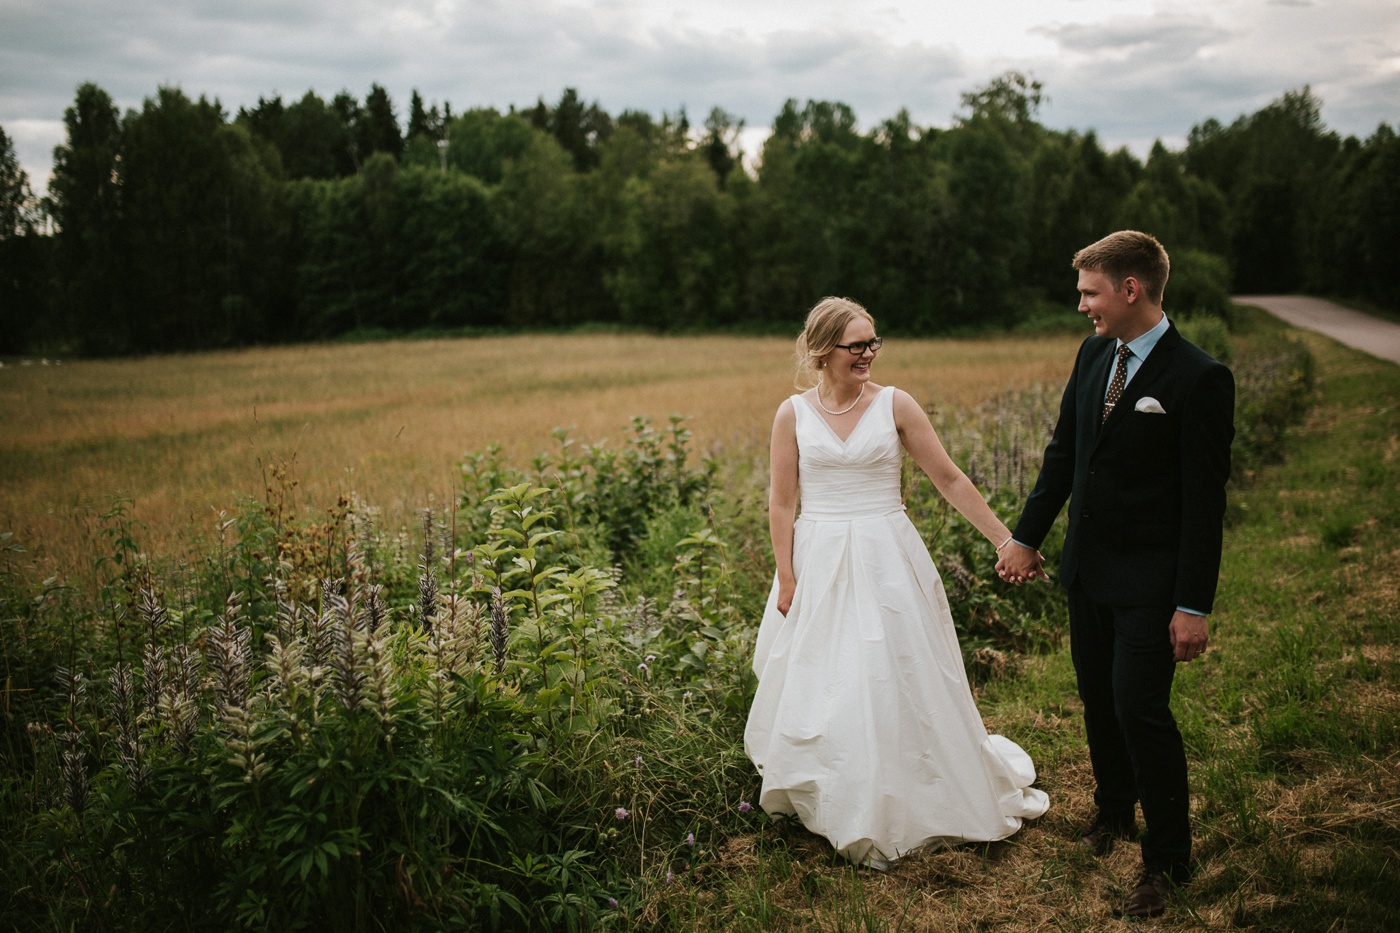 ceciliajoakim_sweden-countryside-summer-wedding_melbourne-fun-quirky-wedding-photography_92